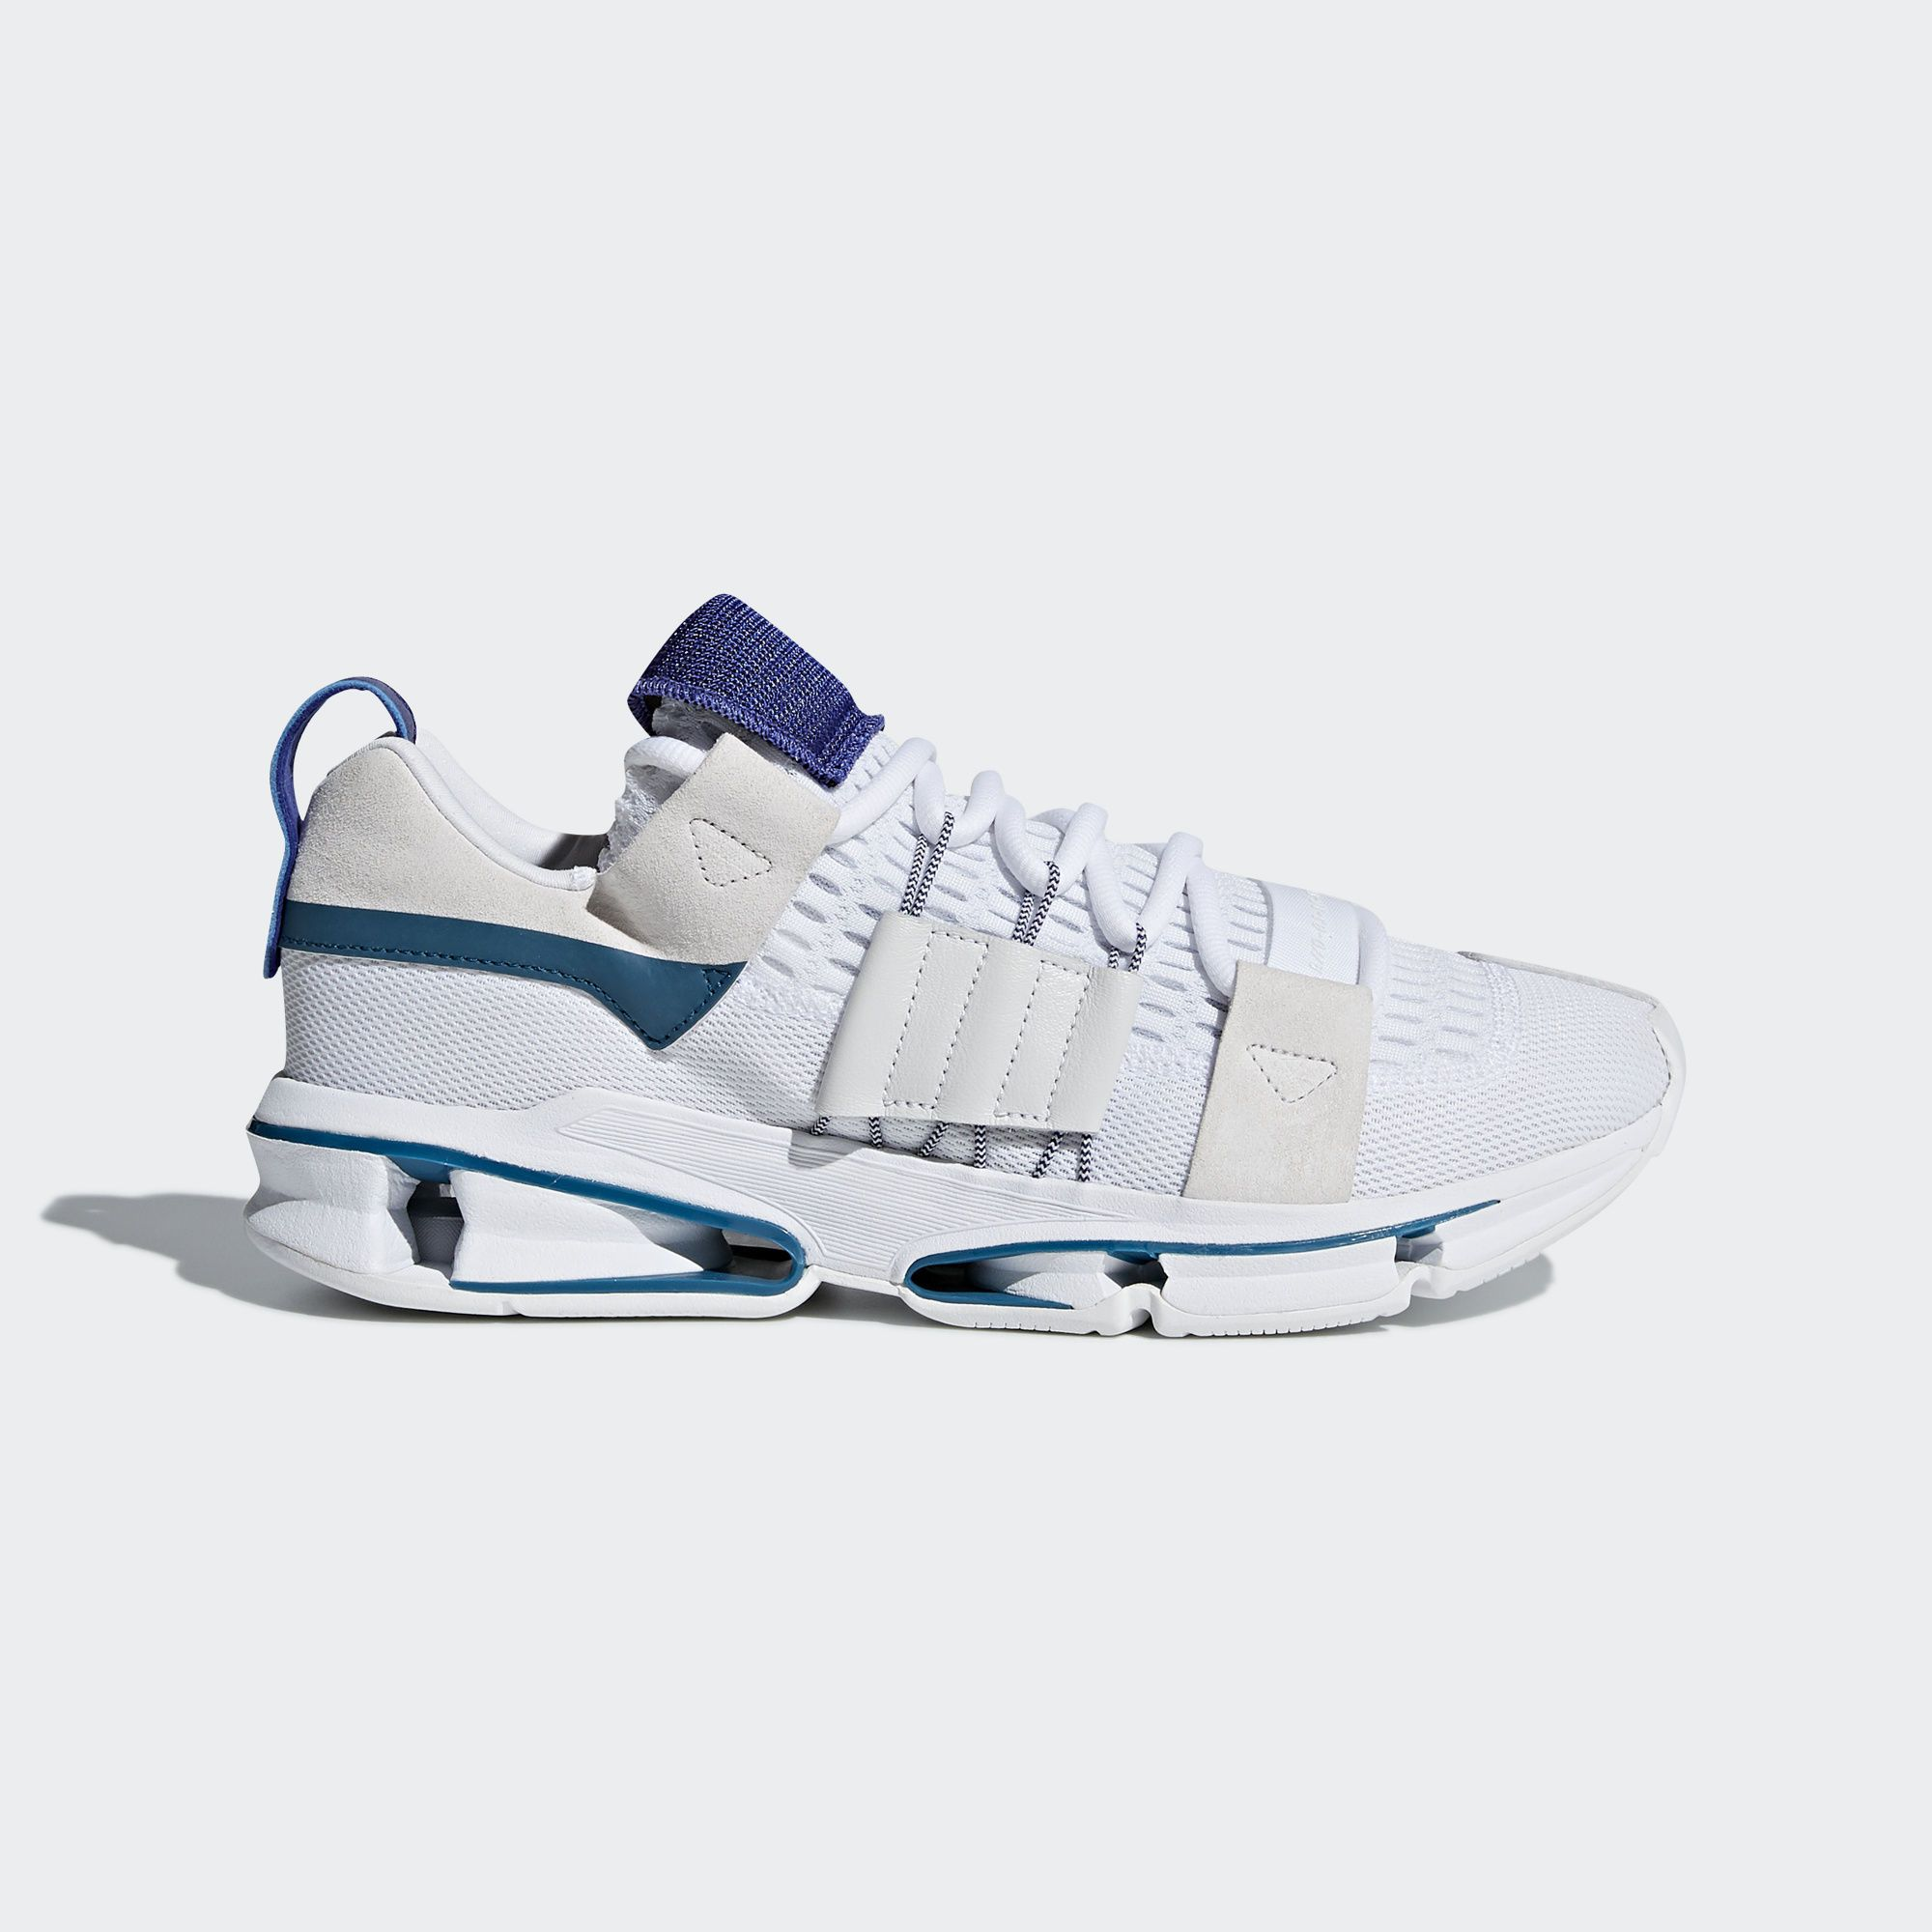 Adidas Originals Men 's Twinstrike ADV Shoes Sneakers White / Blue  - CM8096